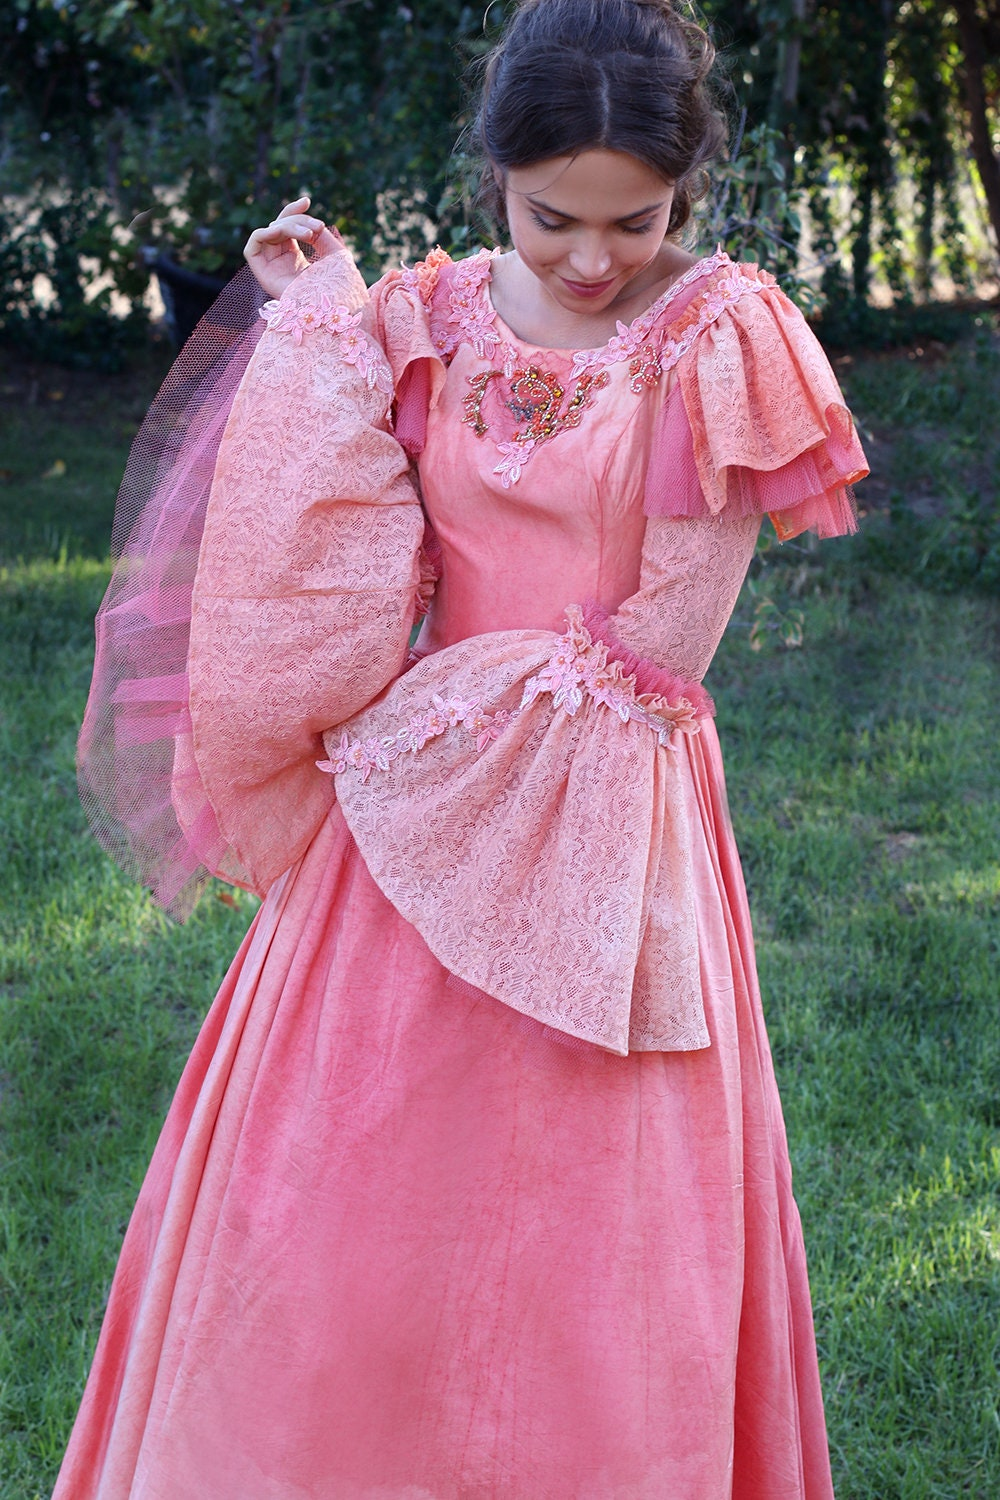 Fairy Tale Wedding Gown Custom Dress Hand Revived Upcycled